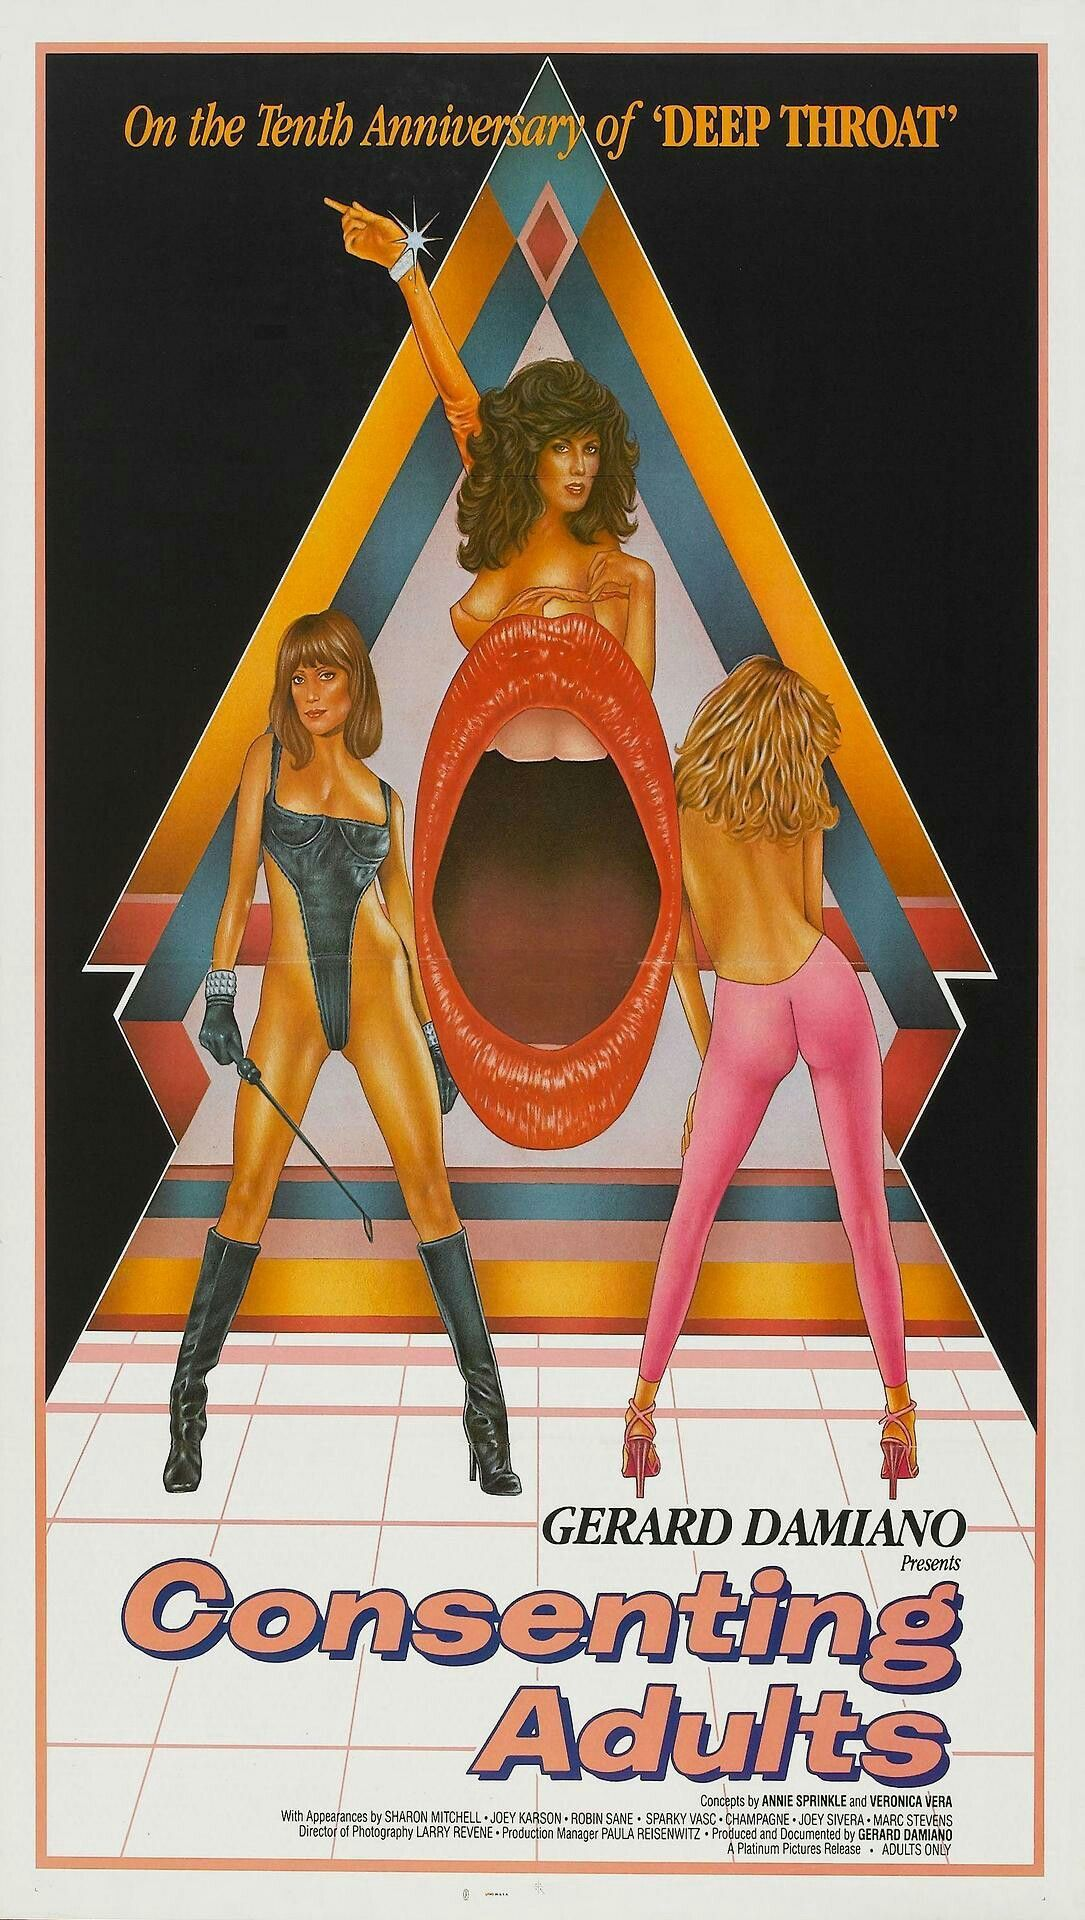 Consenting Adults (1982) | Sexploitation | Pinterest